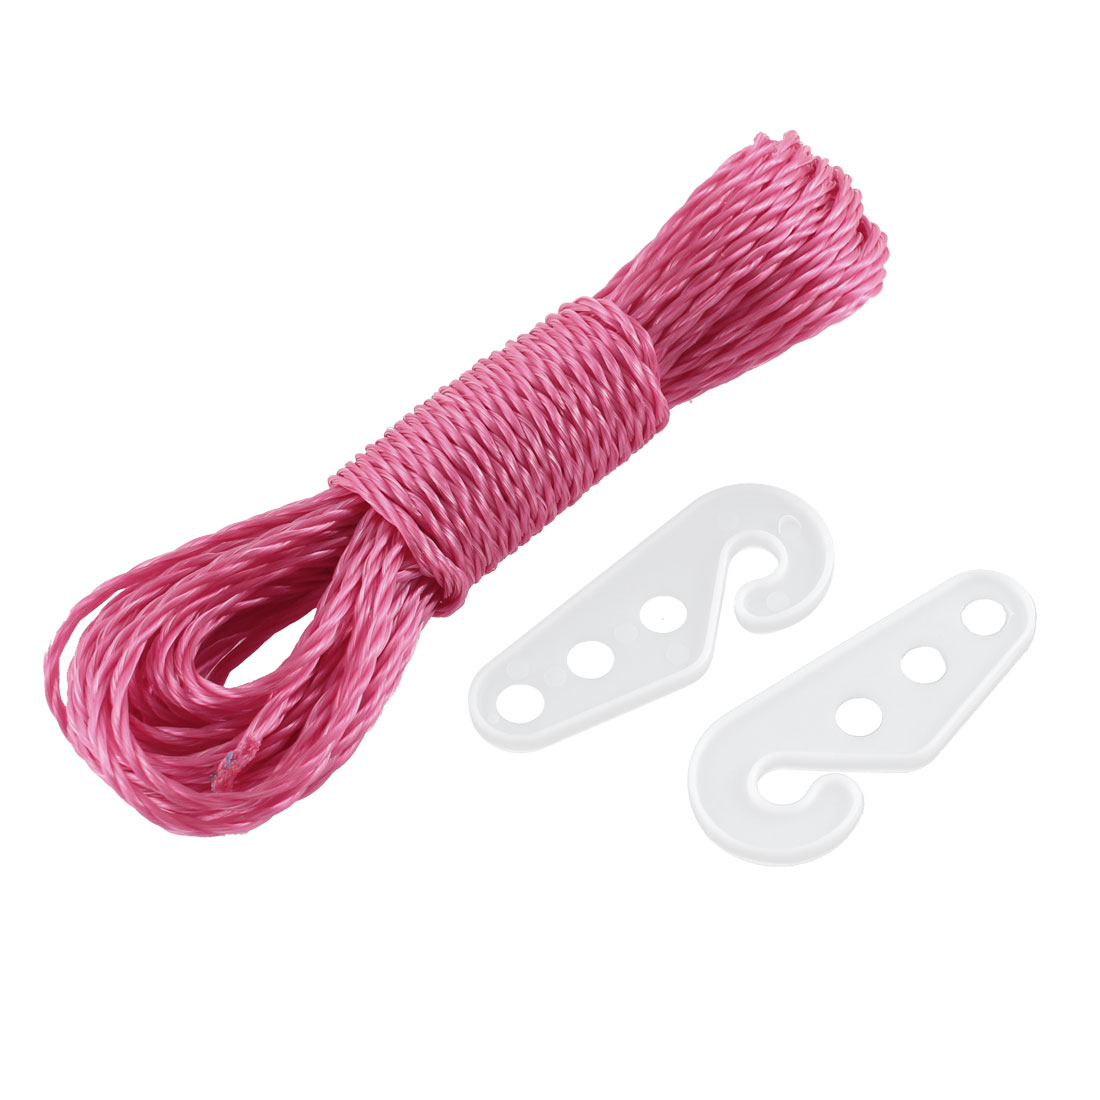 Household Hotel Outdoor Laundry Fuchsia Nylon Clothesline Housekeeping Cloths Line Rope String 33Ft 10M Long